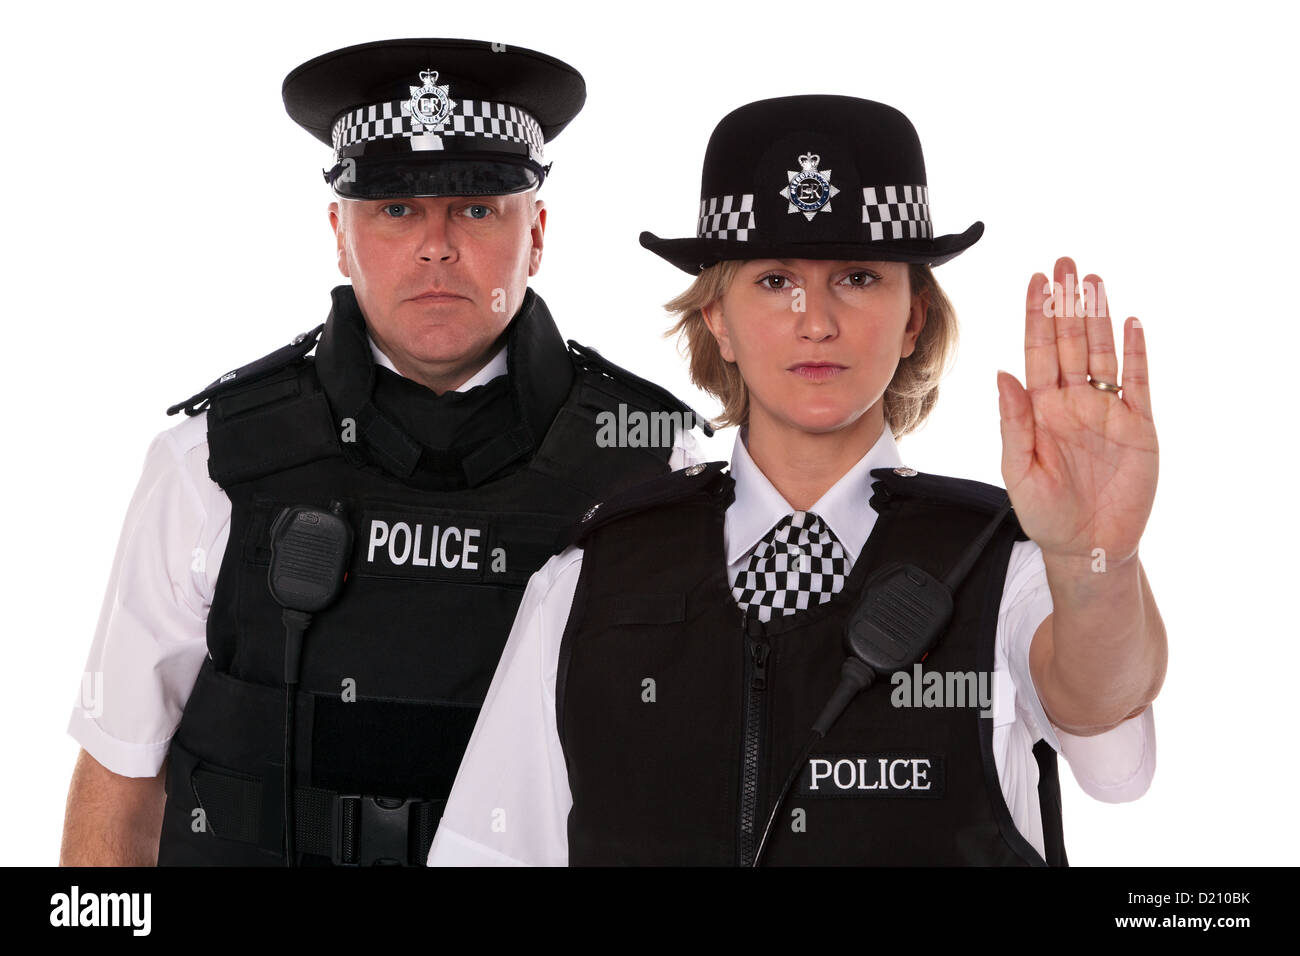 Studio shot of male and female British Police officers in uniform wearing body armour. The WPC is signalling Stop. - Stock Image